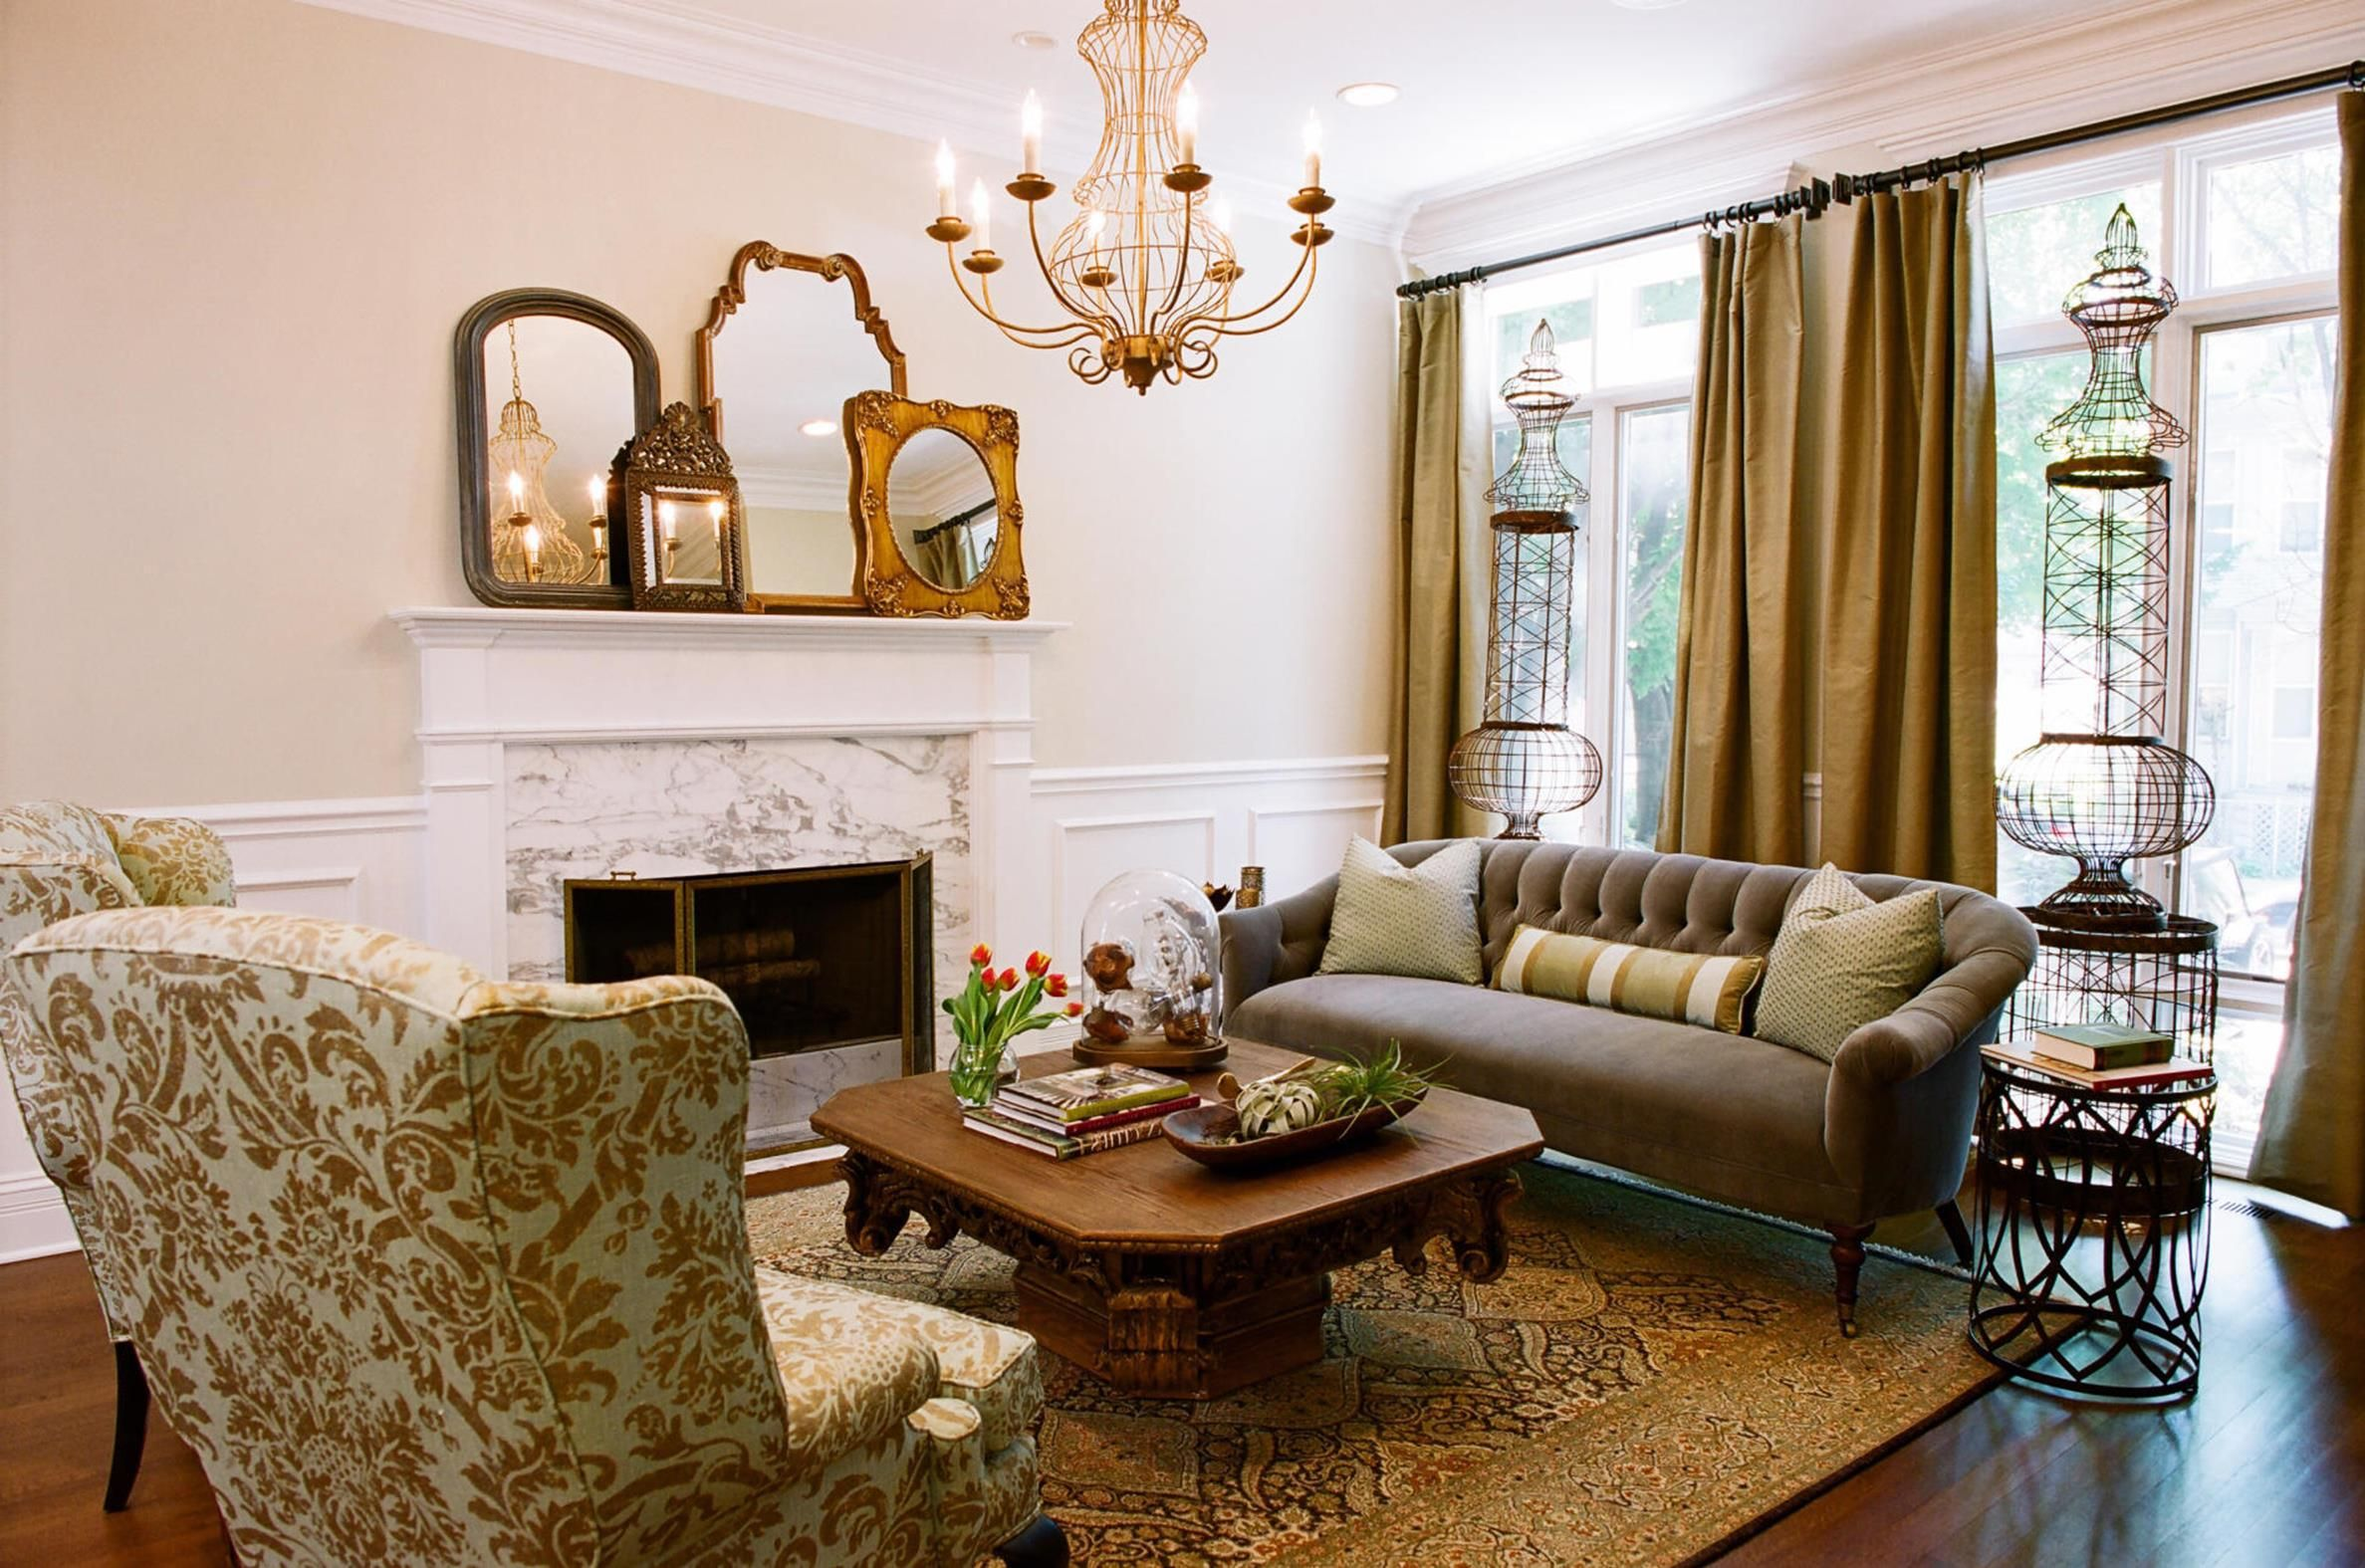 50 cozy stylish rooms country living ideas  country style